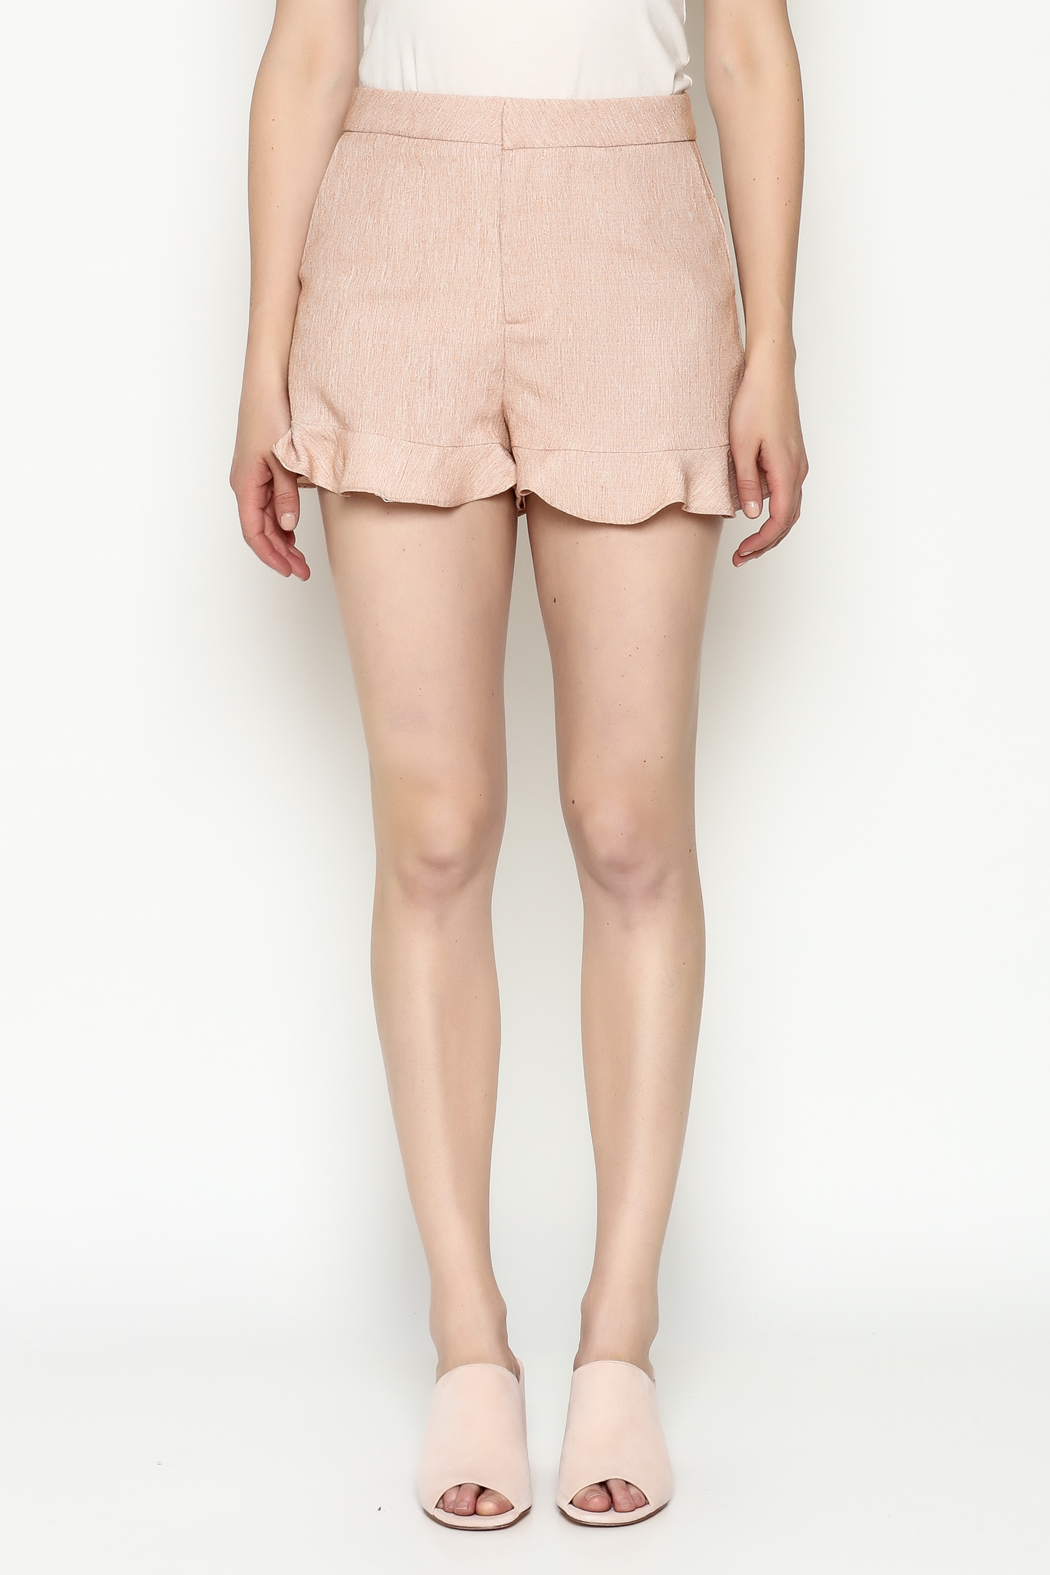 Jealous Tomato Ruffled Shorts - Front Full Image